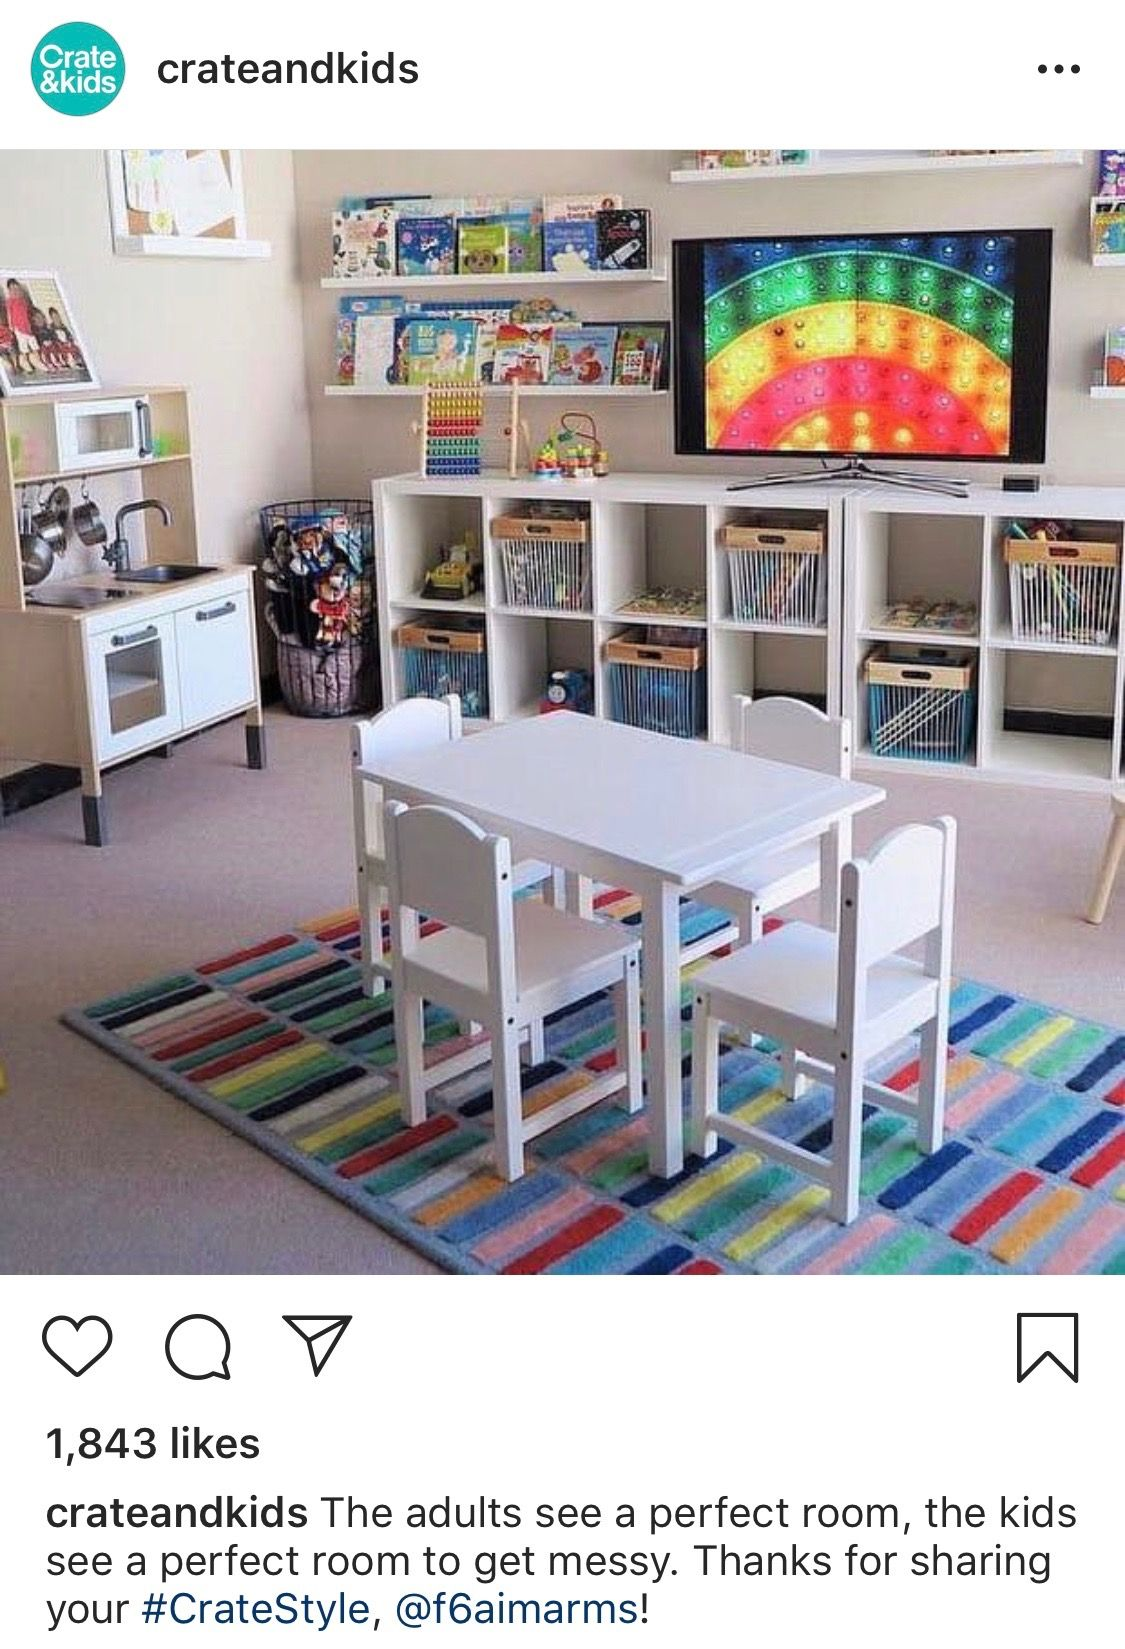 Pin By Leslie Iniguez On Home | Crates, Playroom, Thanks For Sharing